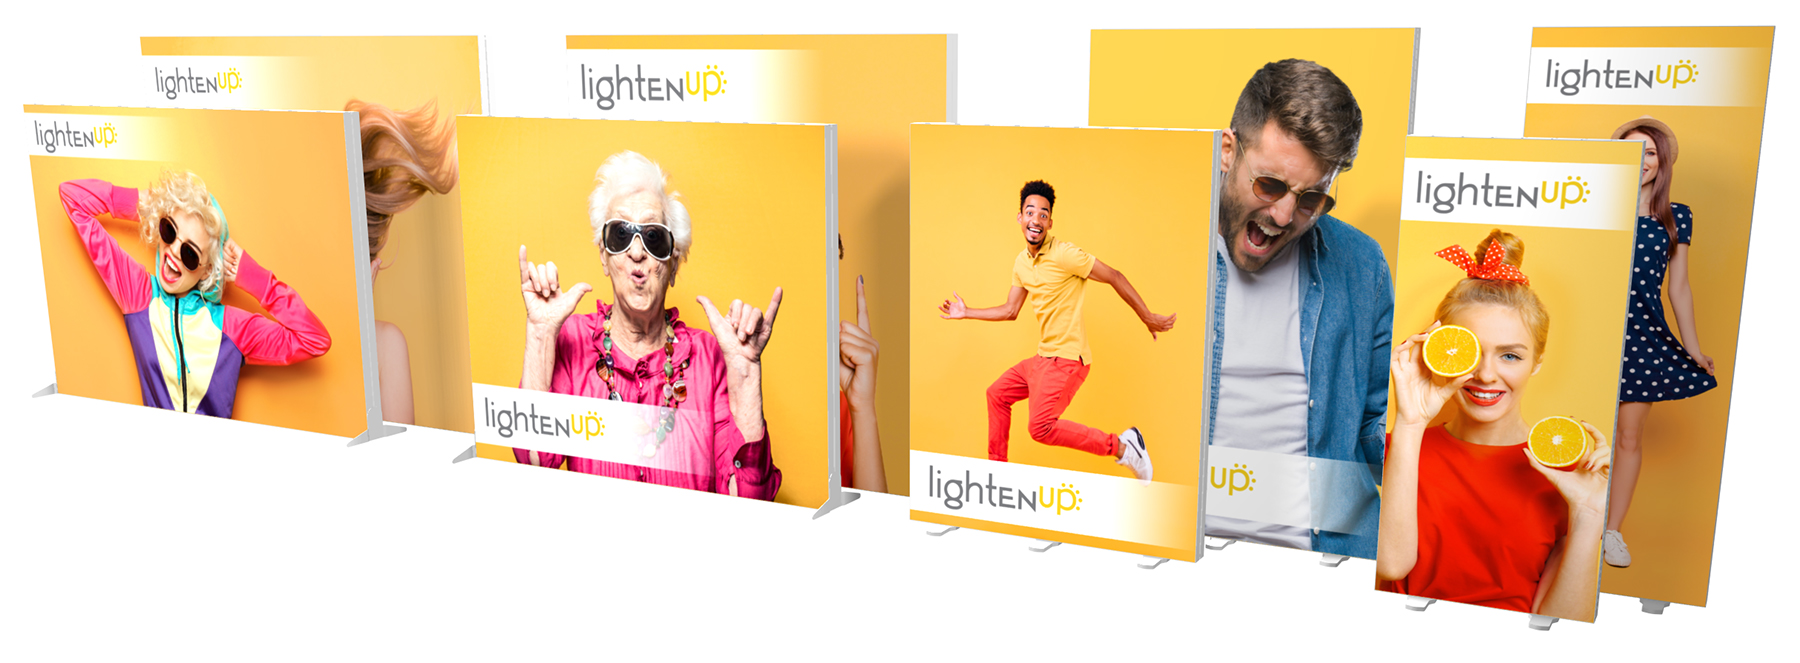 lightenup-all-qtrleft-1800.jpg